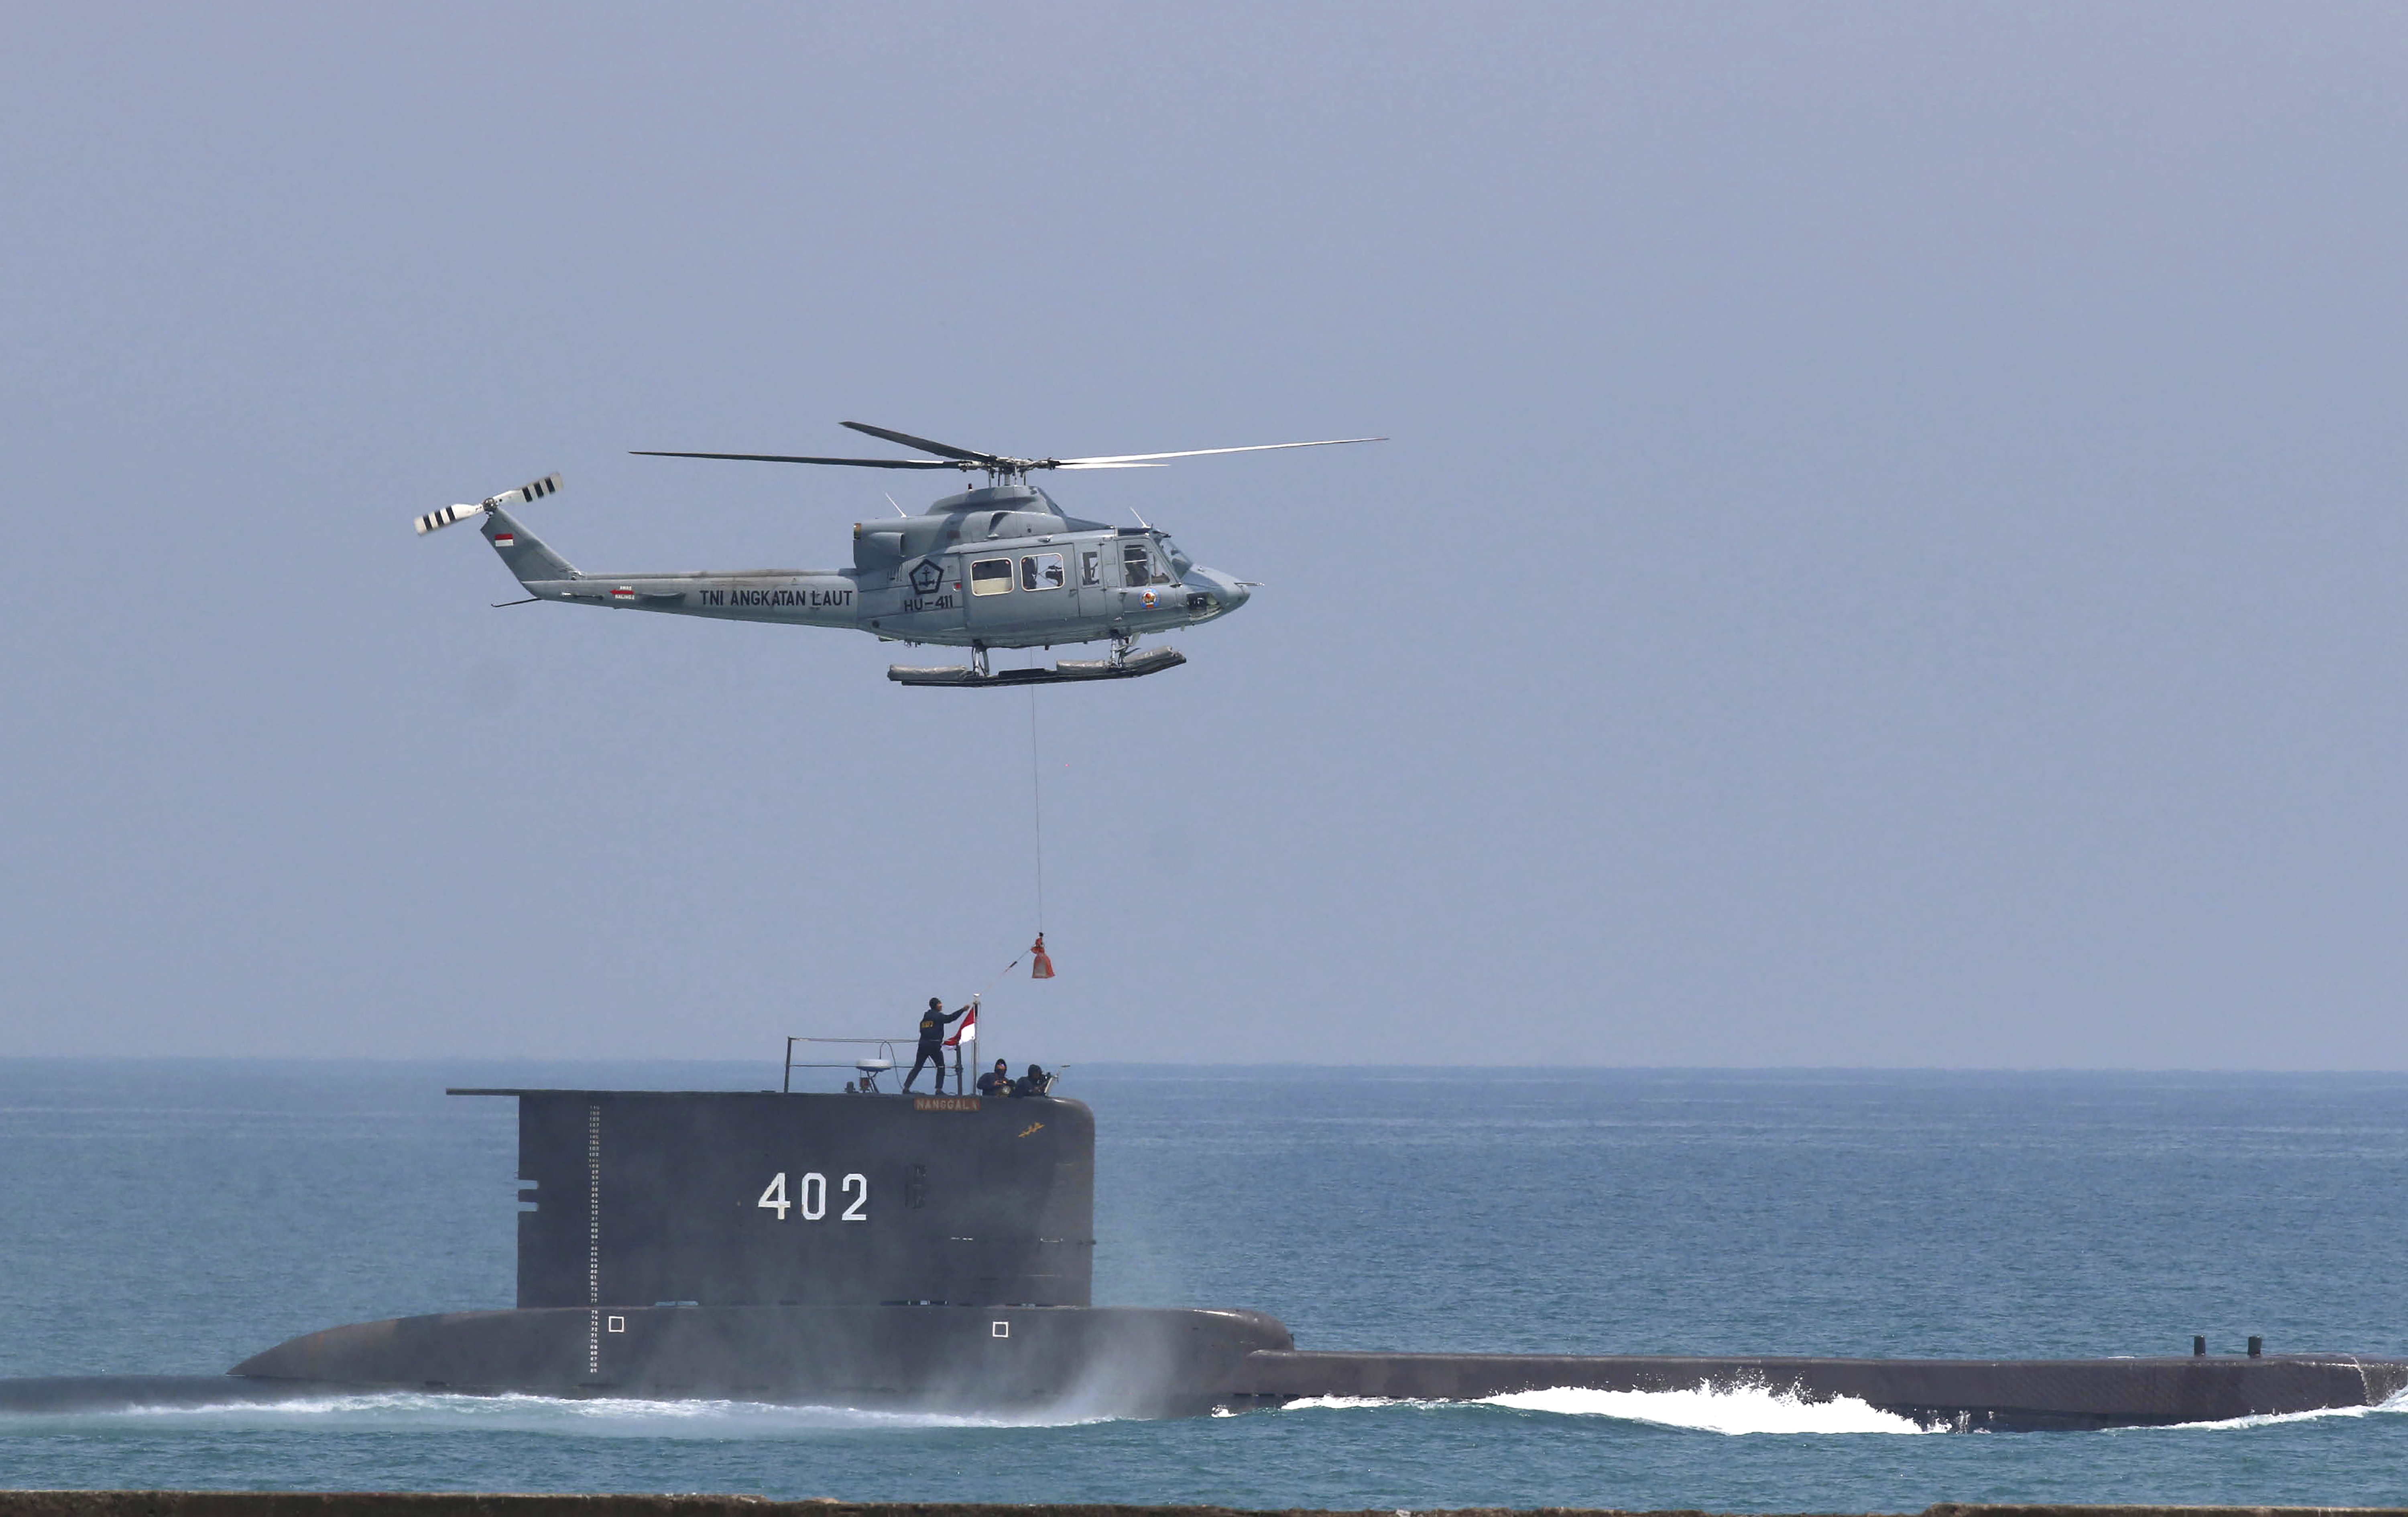 The Indonesian Navy submarine KRI Nanggala takes part in a drill off Cilegon, Indonesia, in this Tuesday, Oct. 3, 2017 photo.